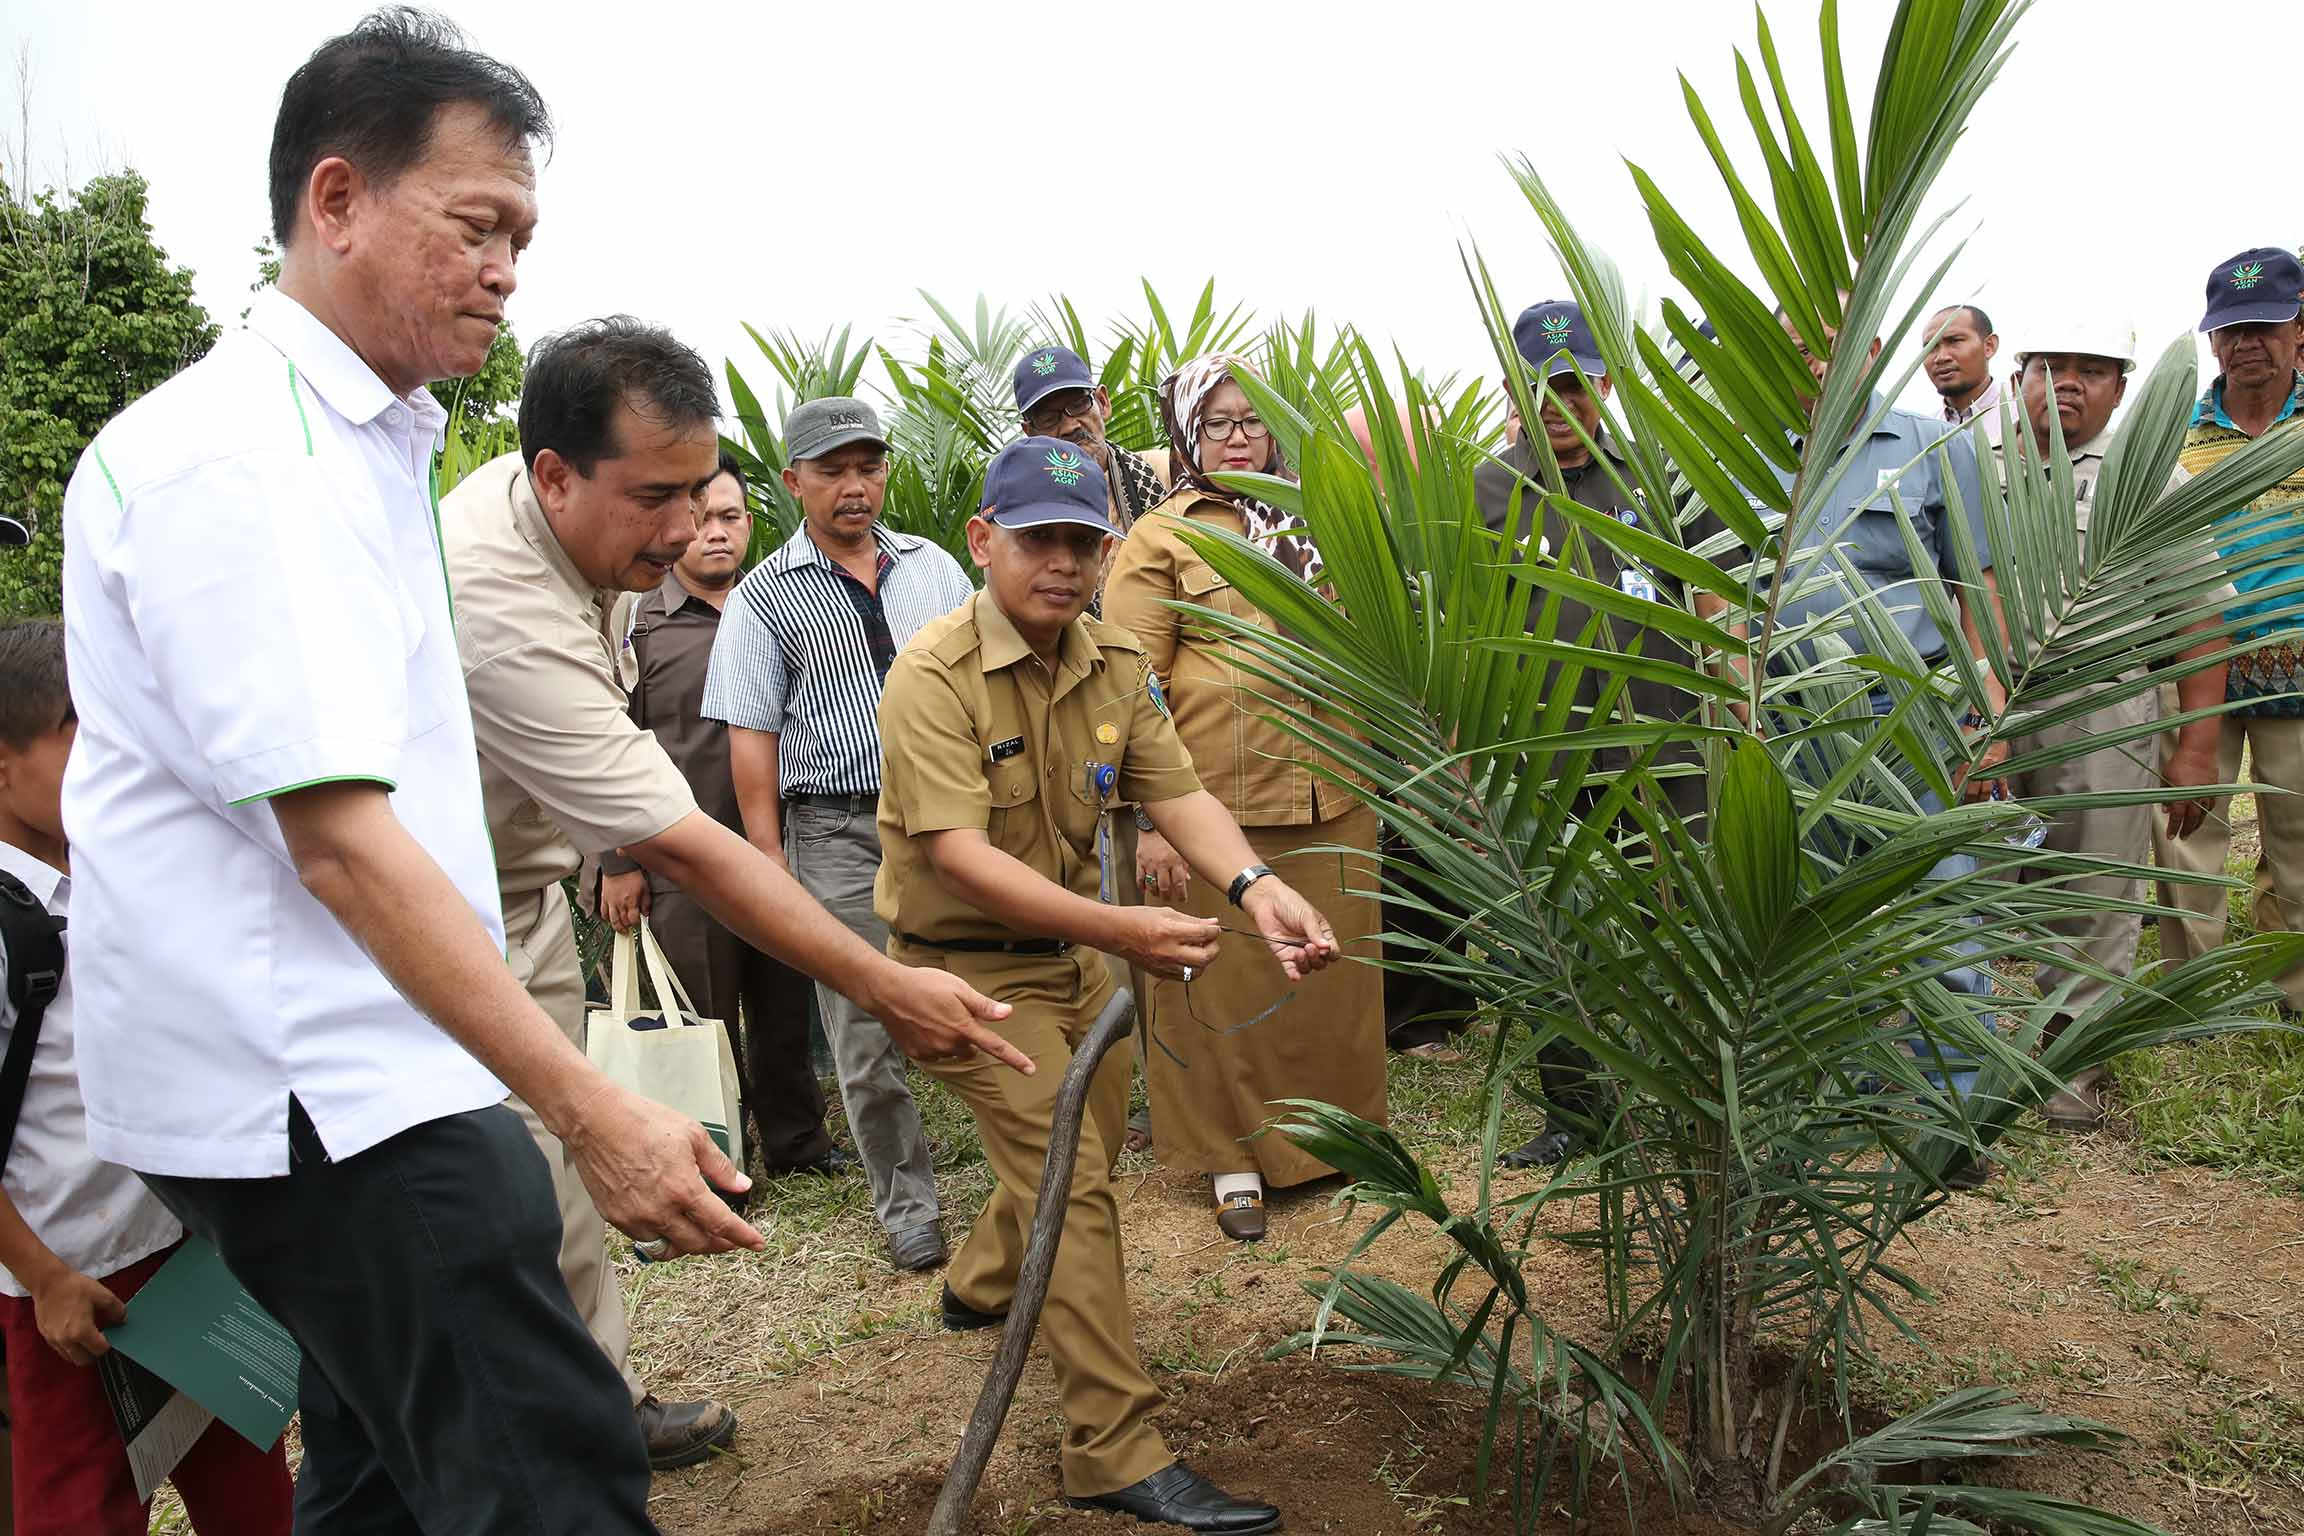 Rizal, Regional Secretariat of Batanghari District, Jambi, conducts first oil palm tree planting to mark the inauguration of Sekolah Sawit Lestari program in Indonesia